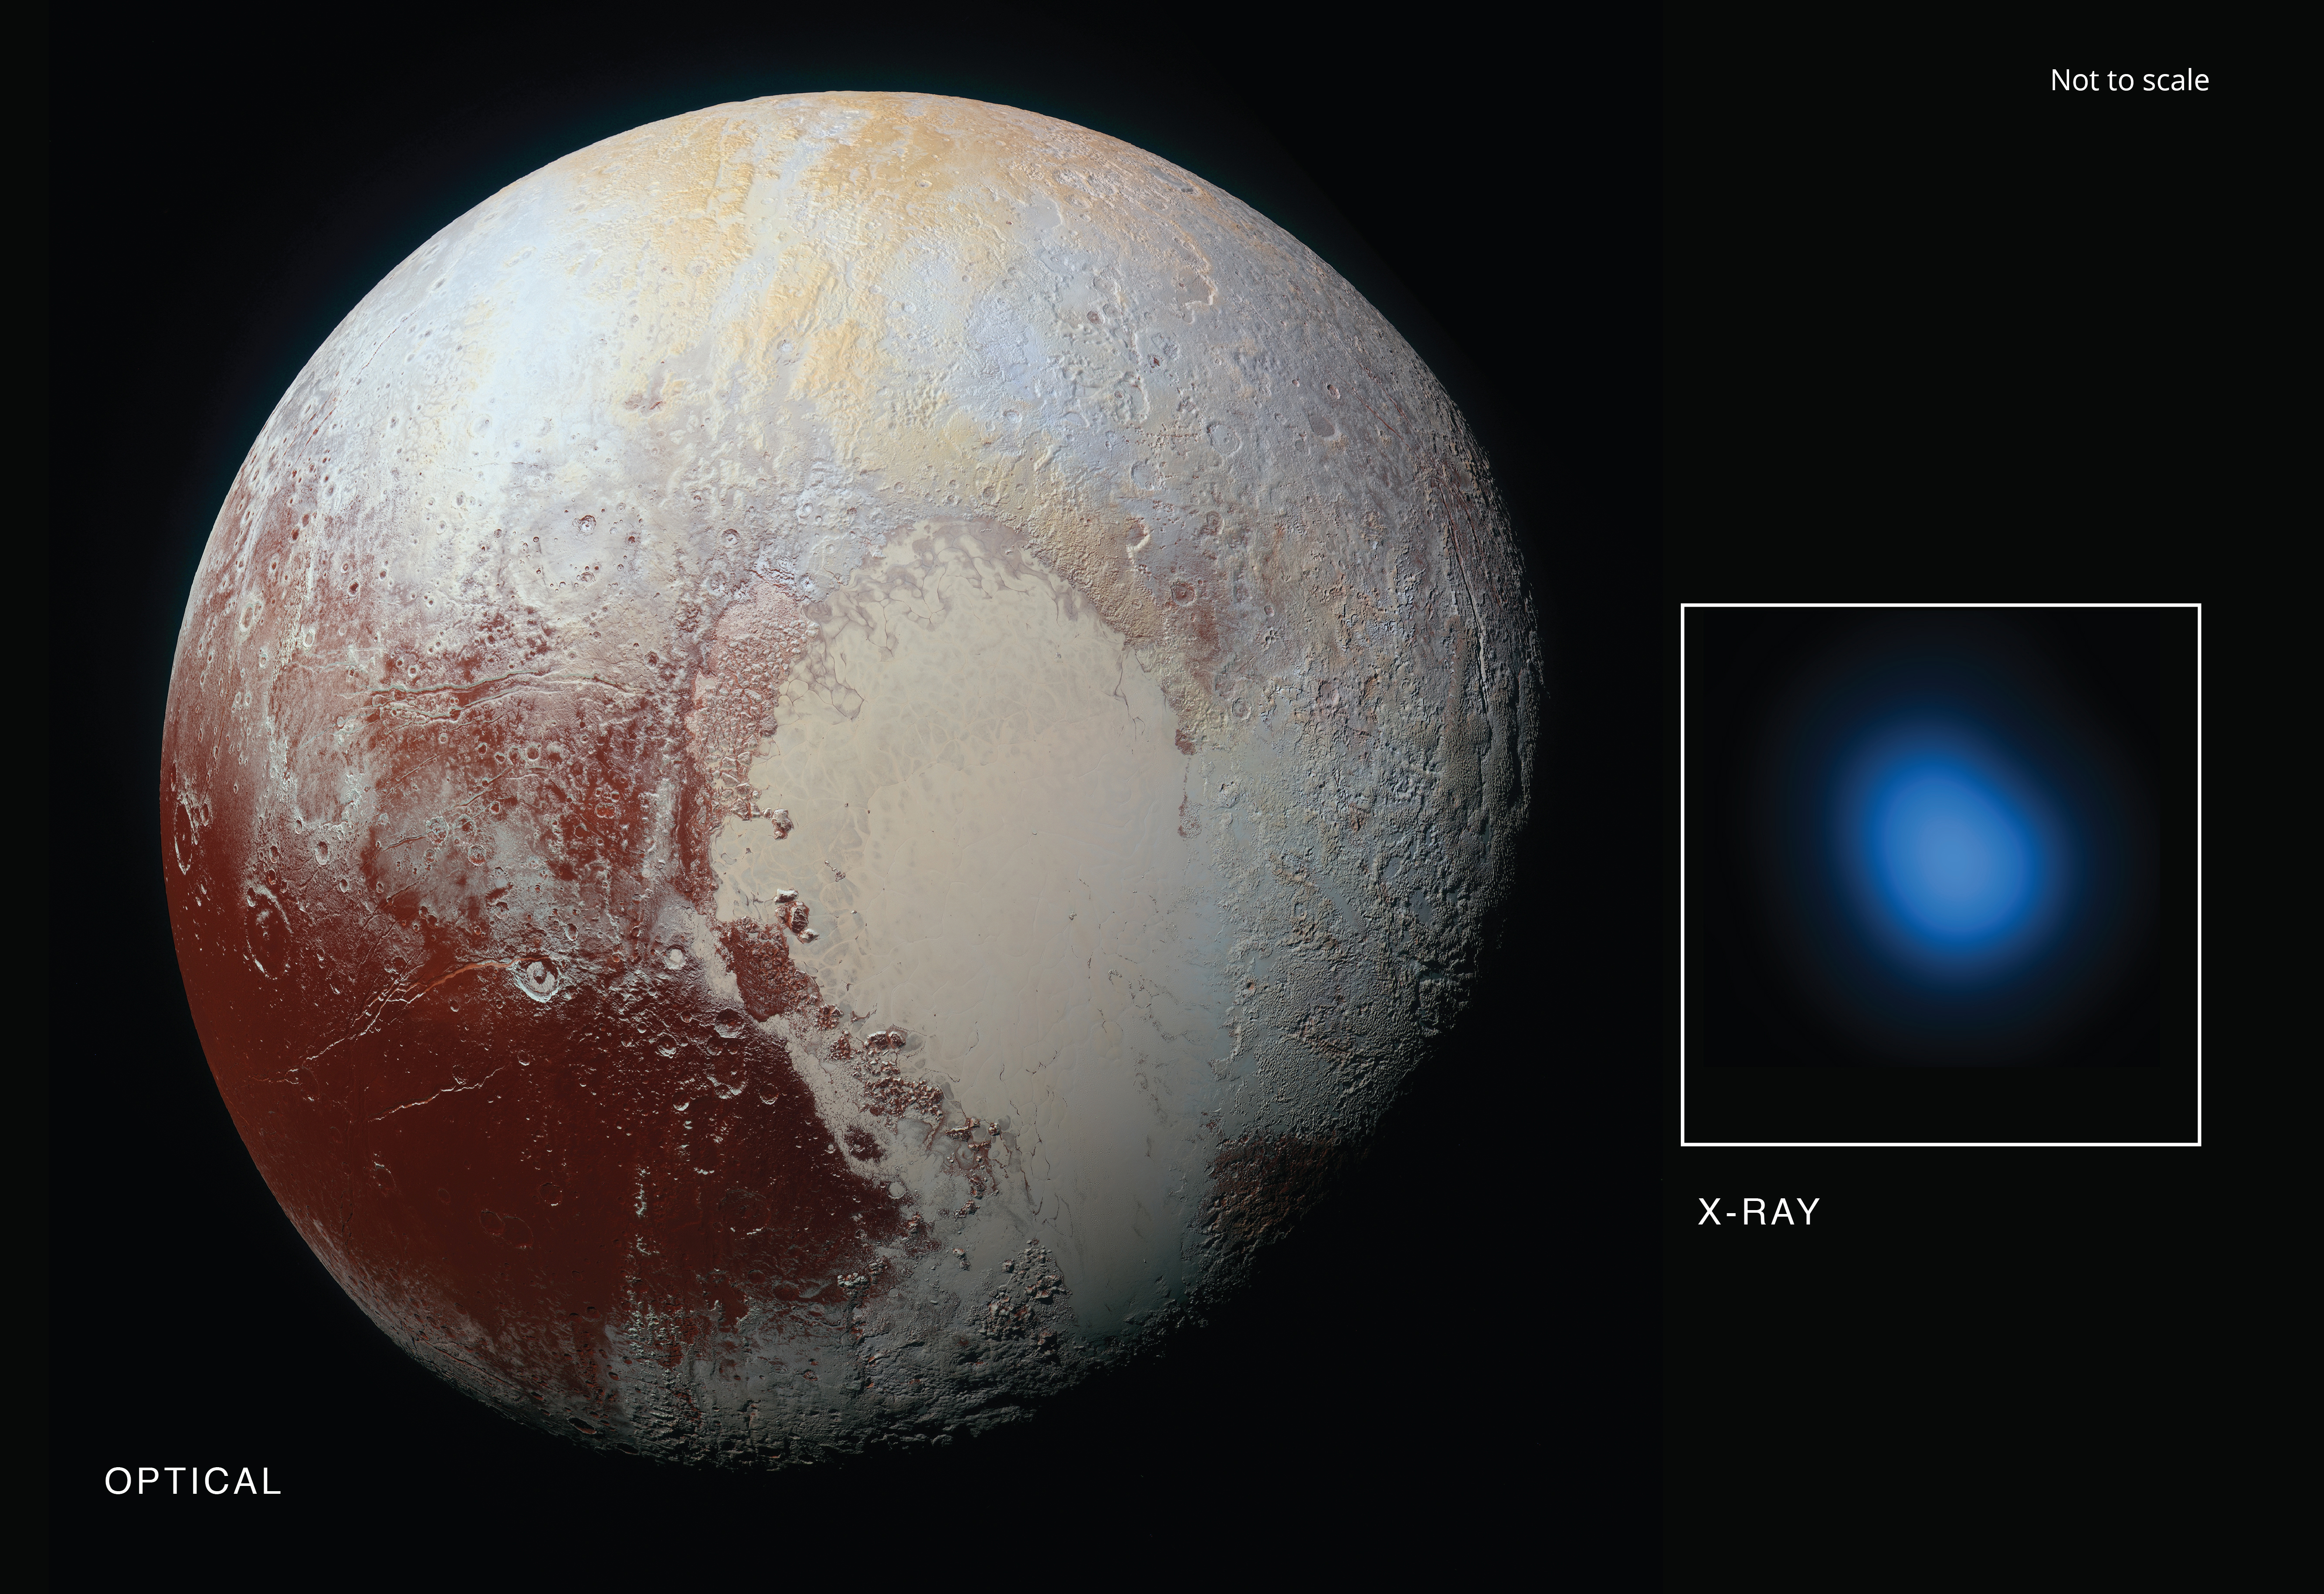 https://www.nasa.gov/sites/default/files/thumbnails/image/pluto_chandra.jpg